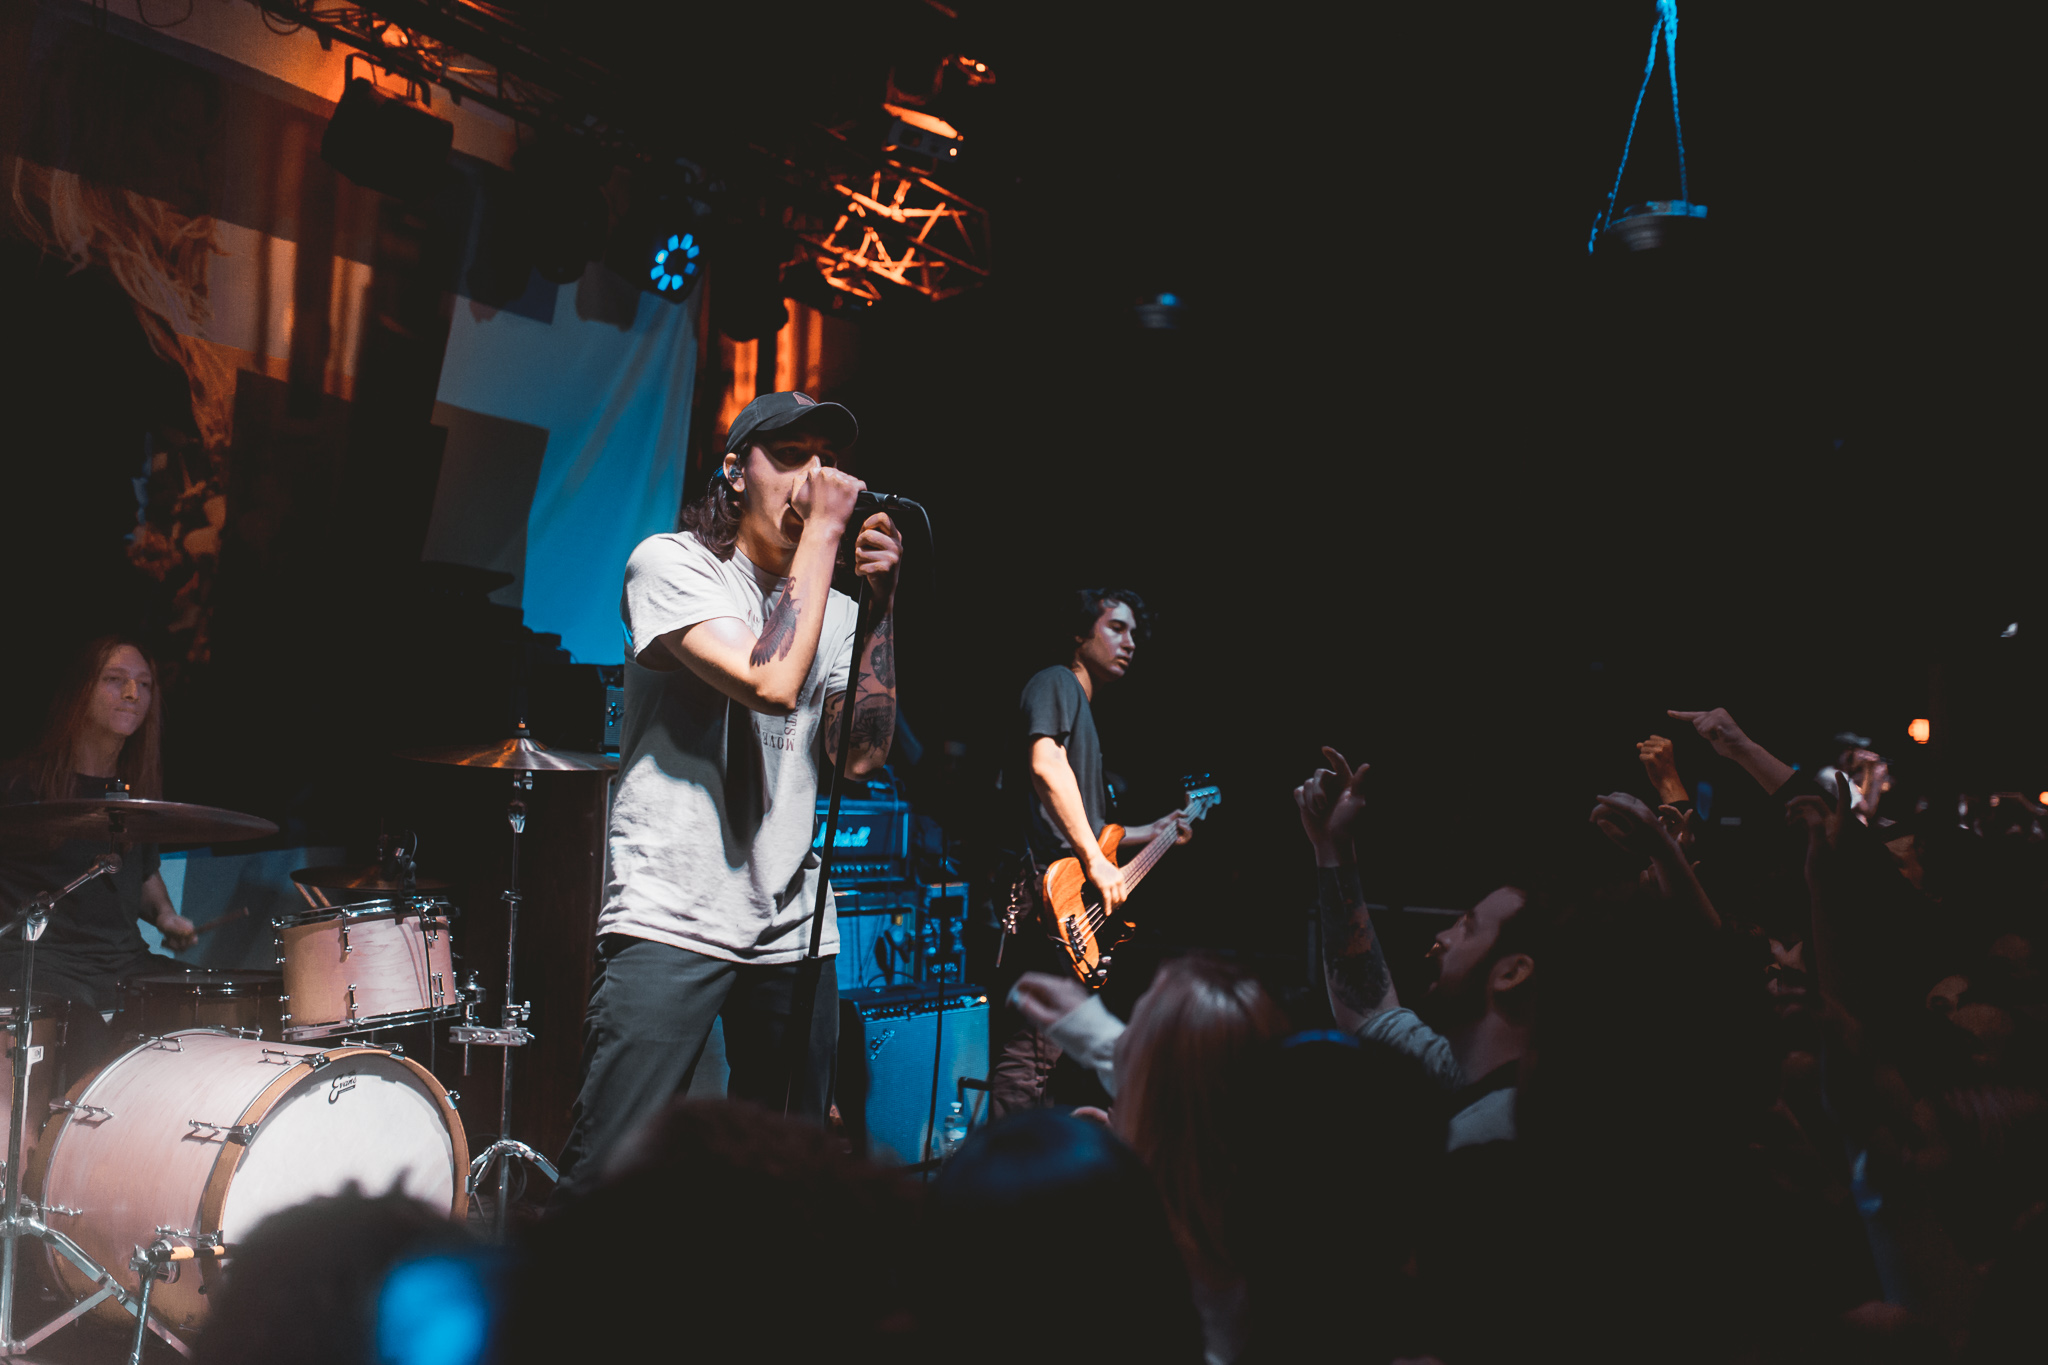 GALLERY: Knuckle Puck & Movements @ Skully's, Columbus - All